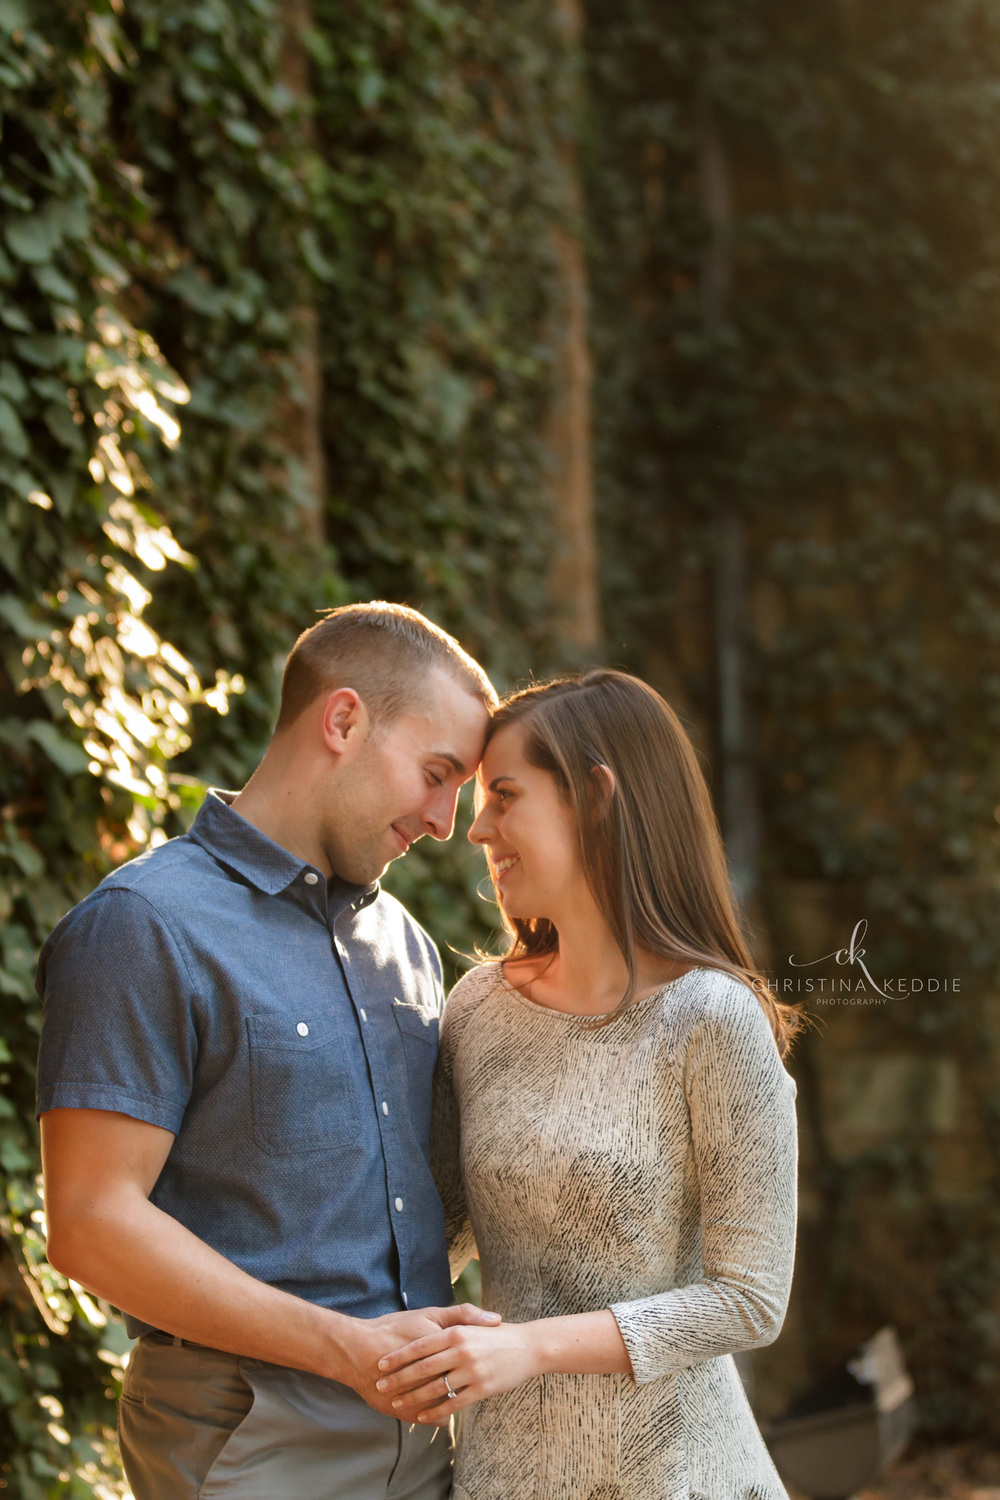 Engaged couple embracing against ivy-covered wall | Christina Keddie Photography | Princeton NJ engagement photographer